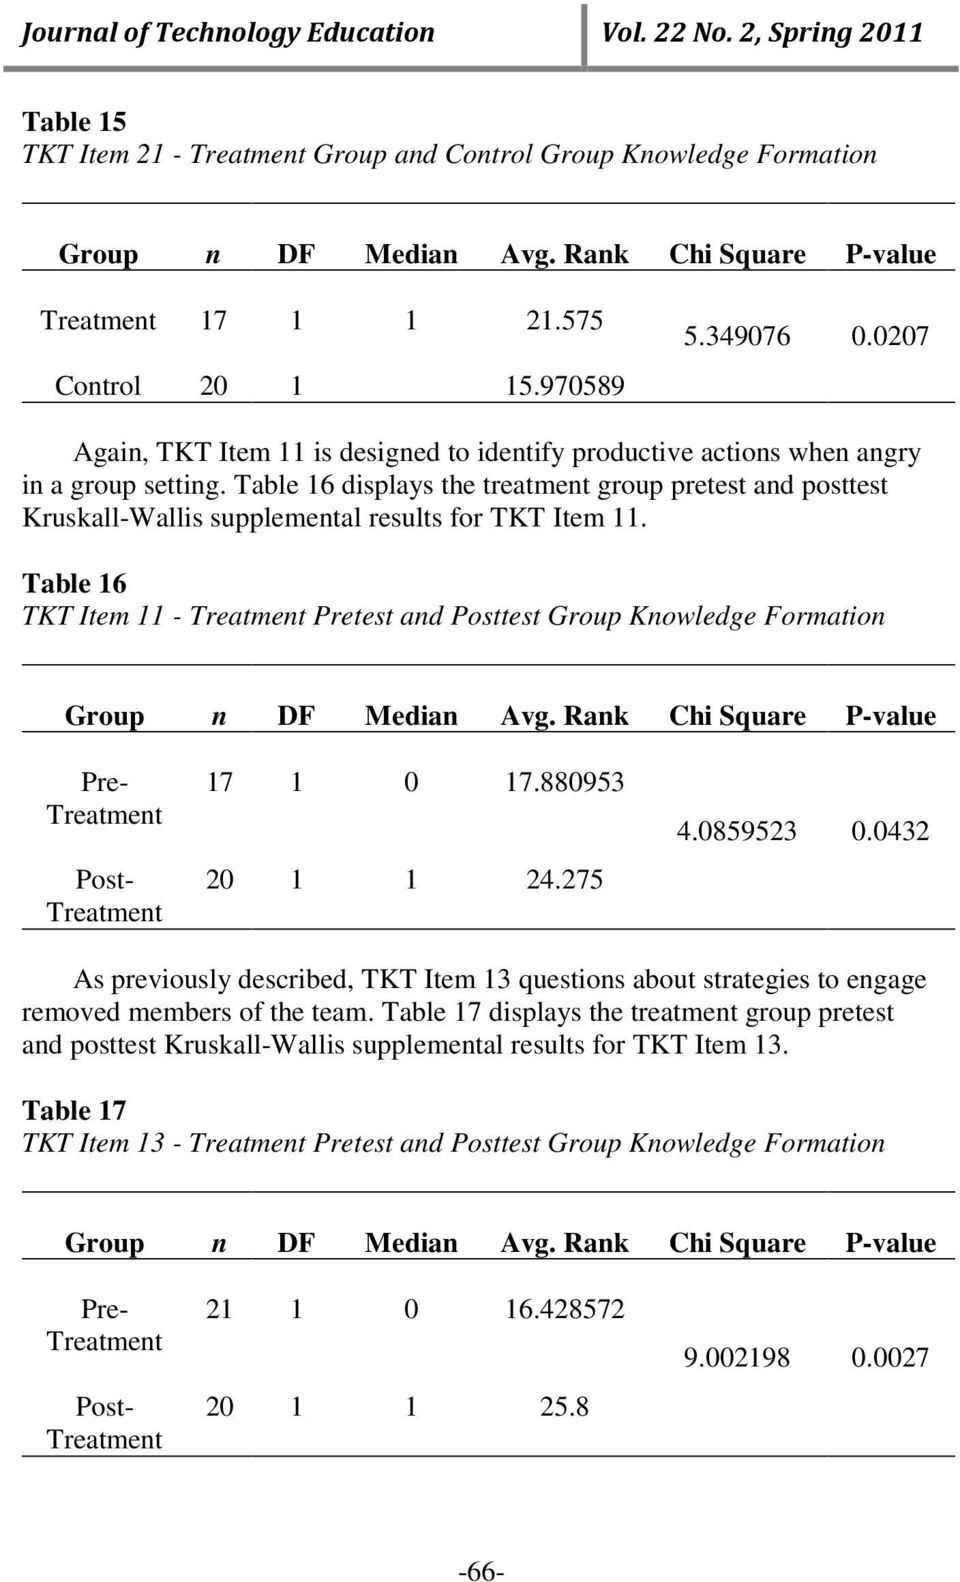 Table 16 displays the treatment group pretest and posttest Kruskall-Wallis supplemental results for TKT Item 11.